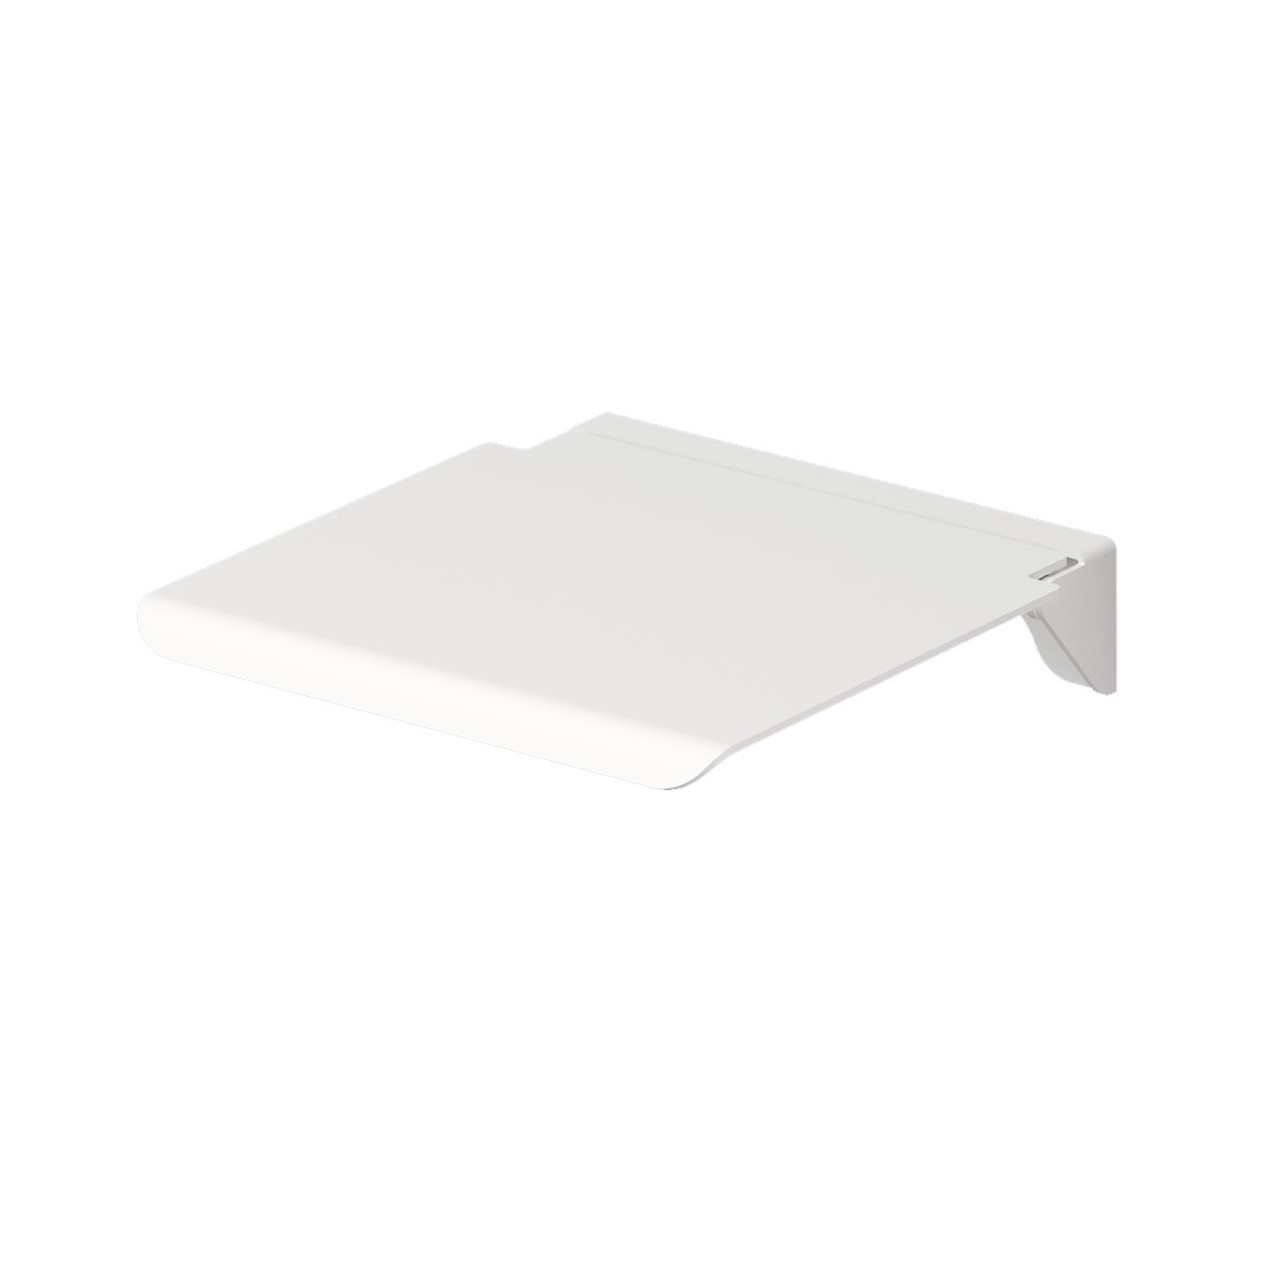 ADA Compliant White Folding Shower Seat 16 x 14 Inches